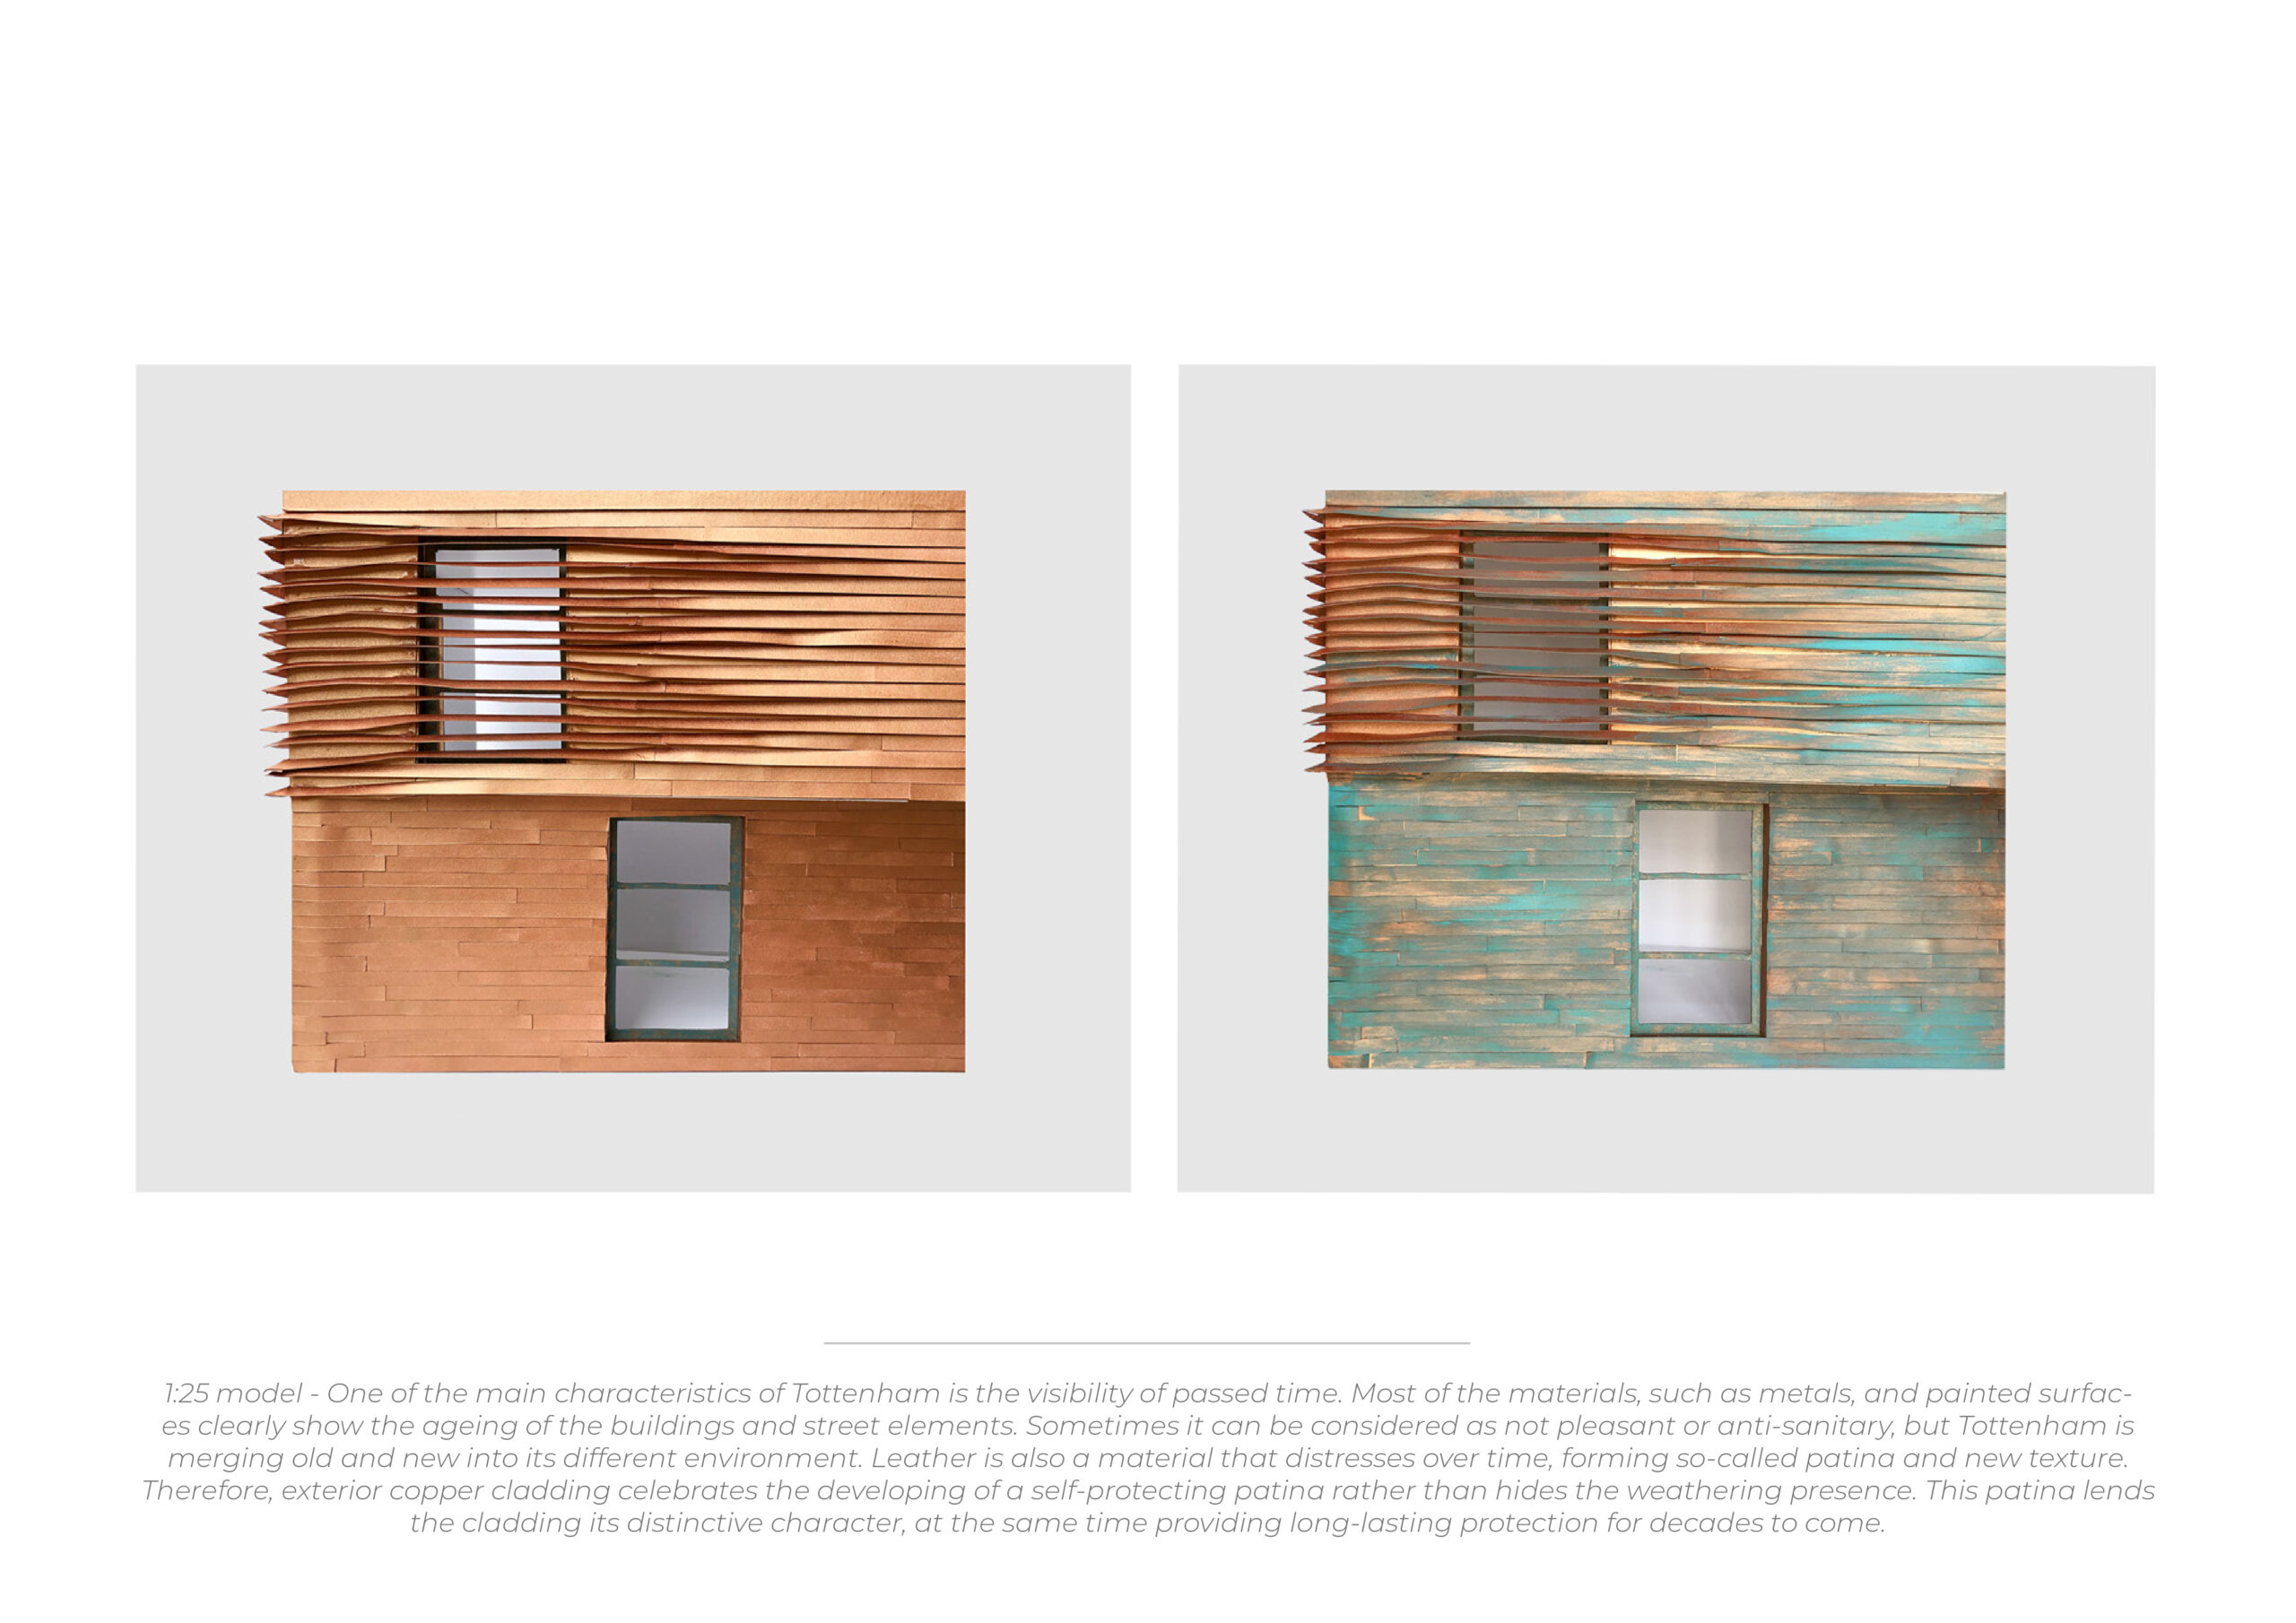 these models how the exterior of the copper building change over time. In one image the copper is brown. In the other it has elements of blue to suggest the ageing copper